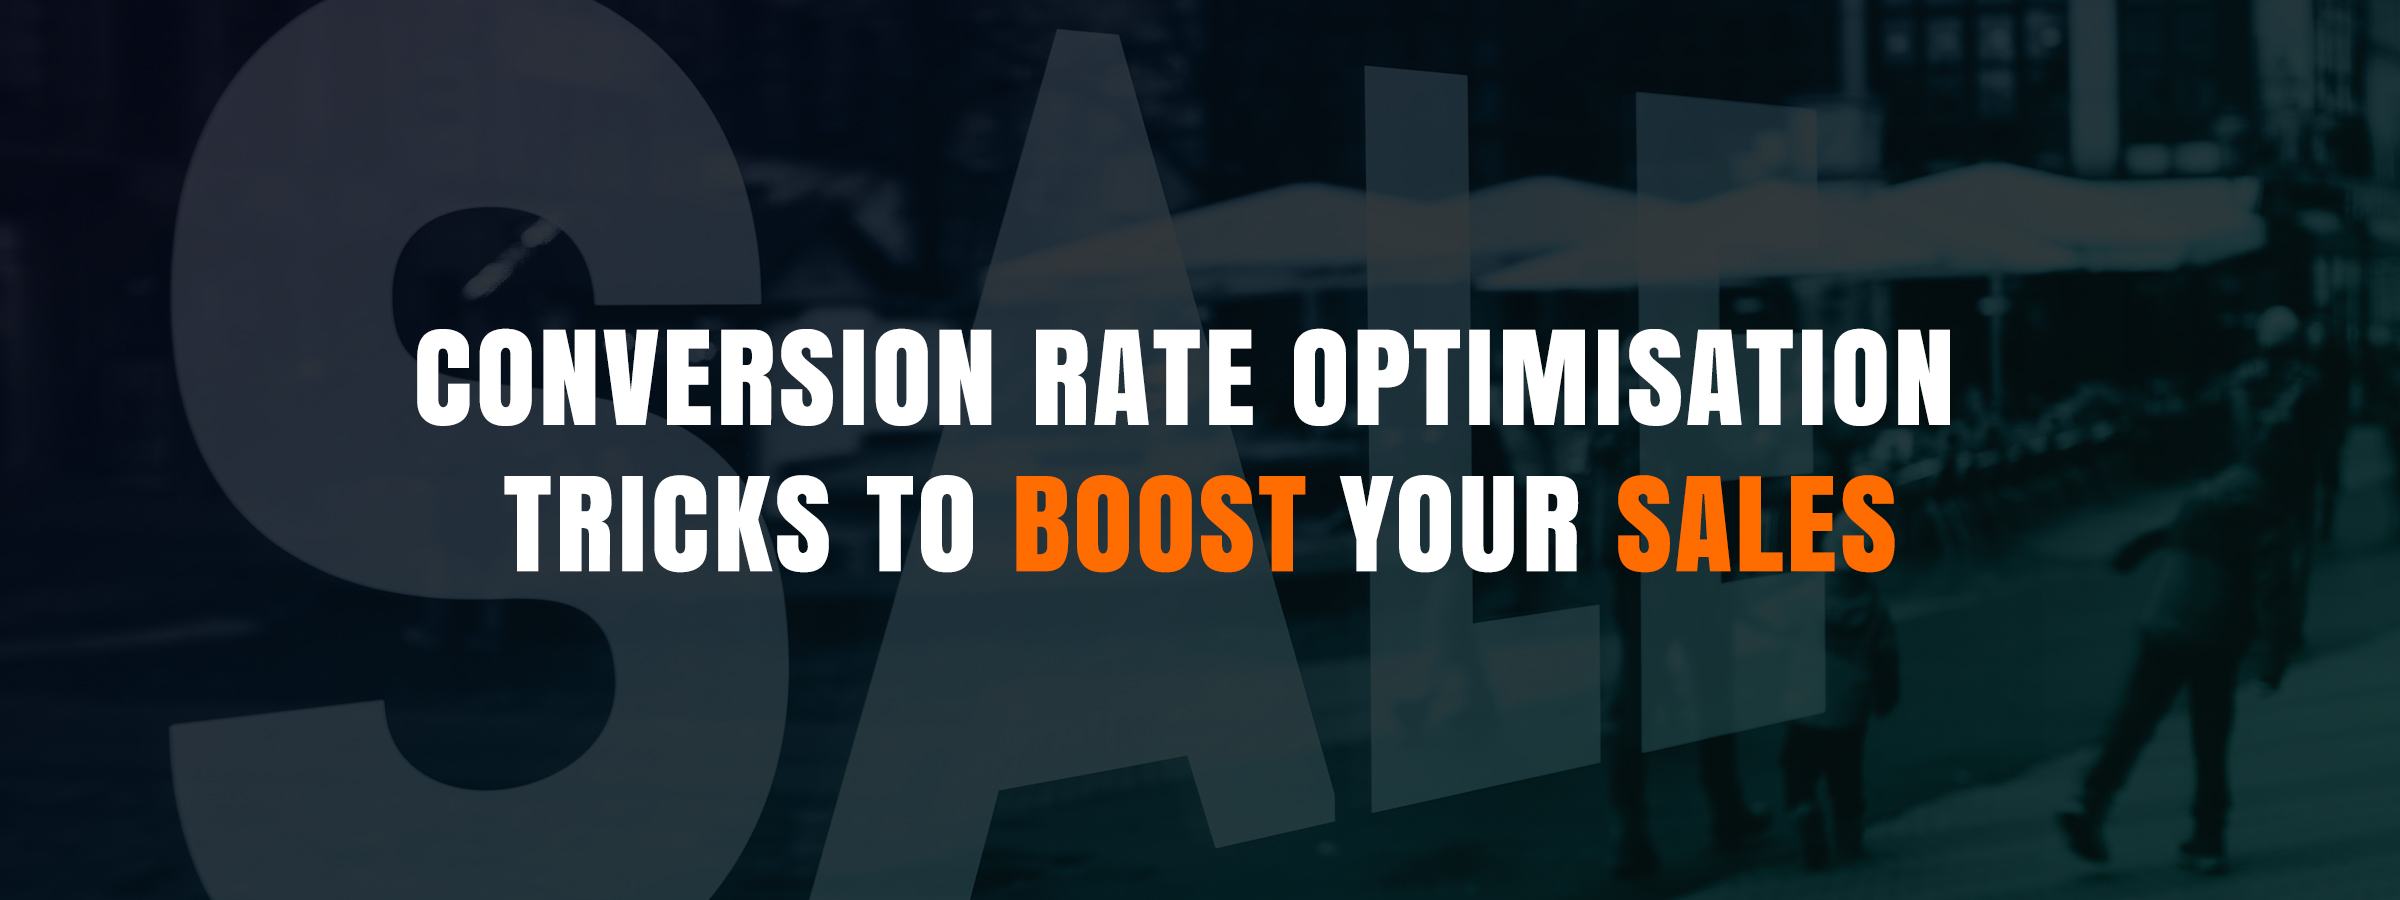 Conversion Rate Optimization Tricks To Boost Your Sales